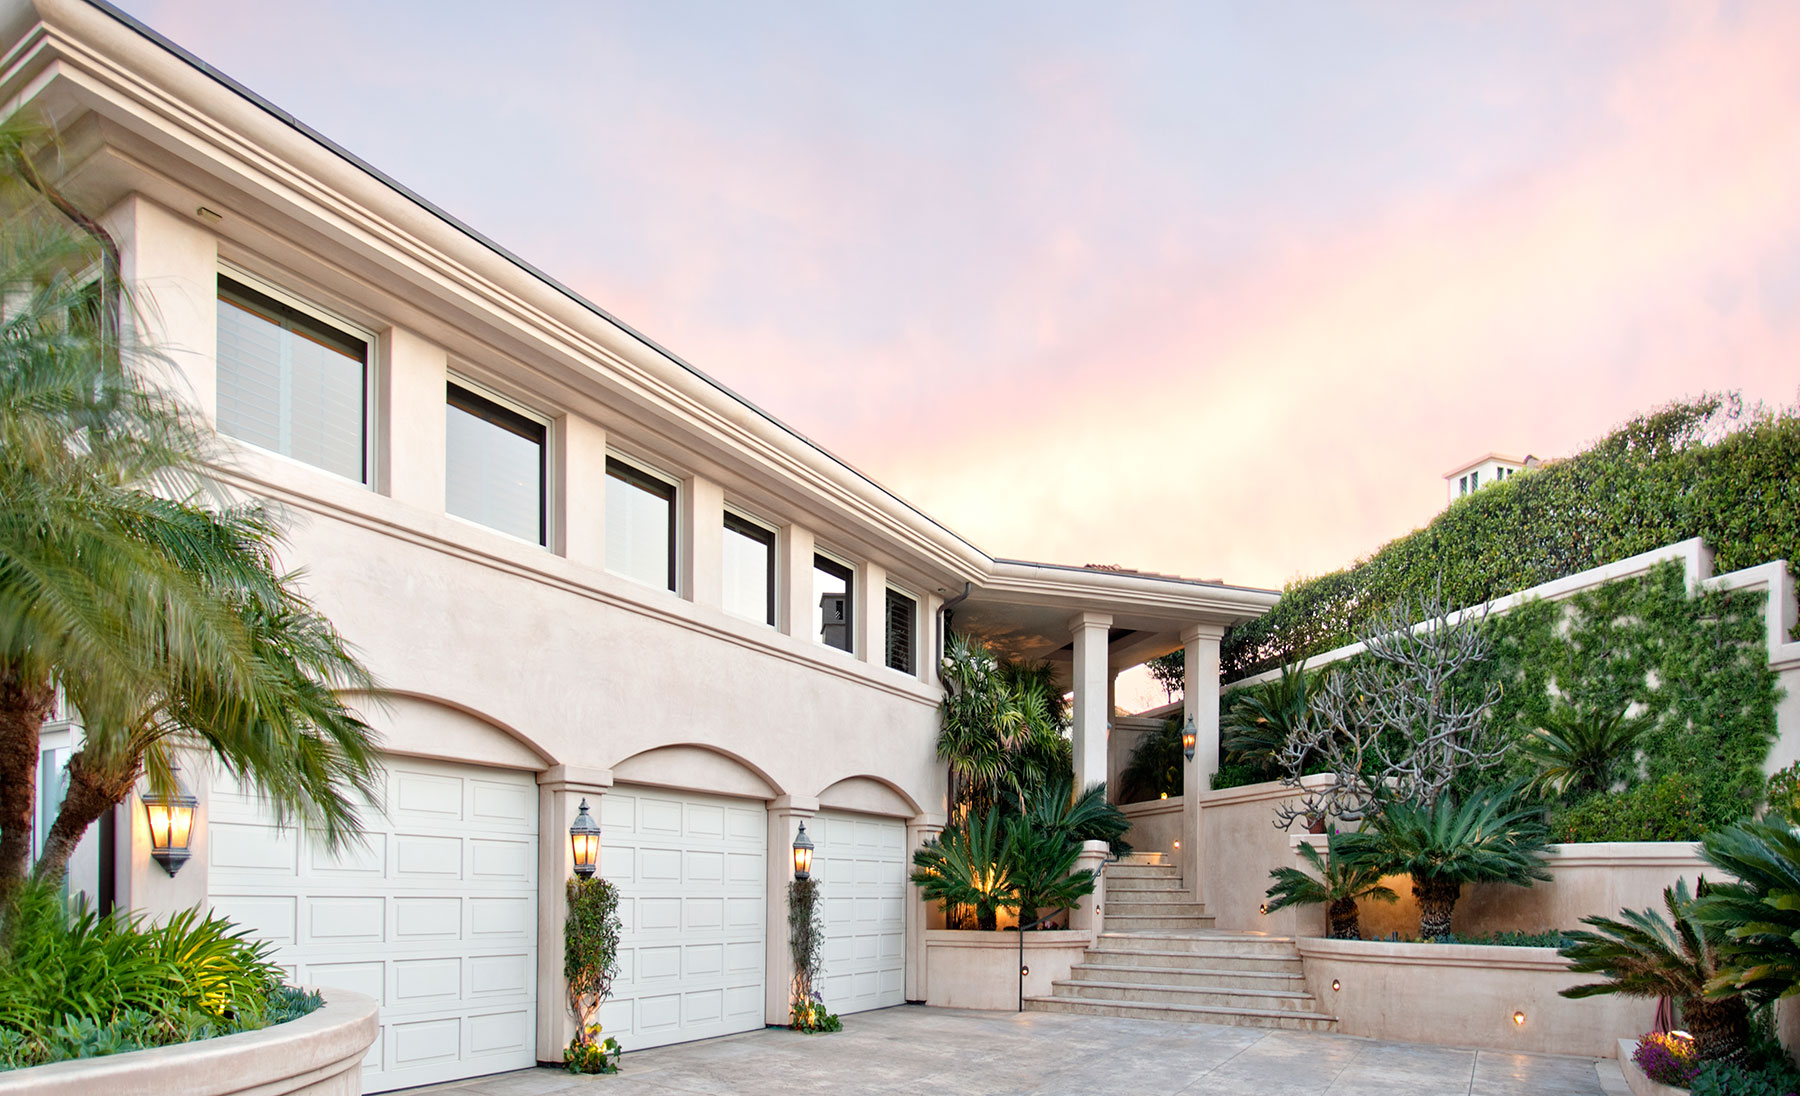 Villa per Vendita alle ore 33 Monarch Bay Dr. Dana Point, California, 92629 Stati Uniti